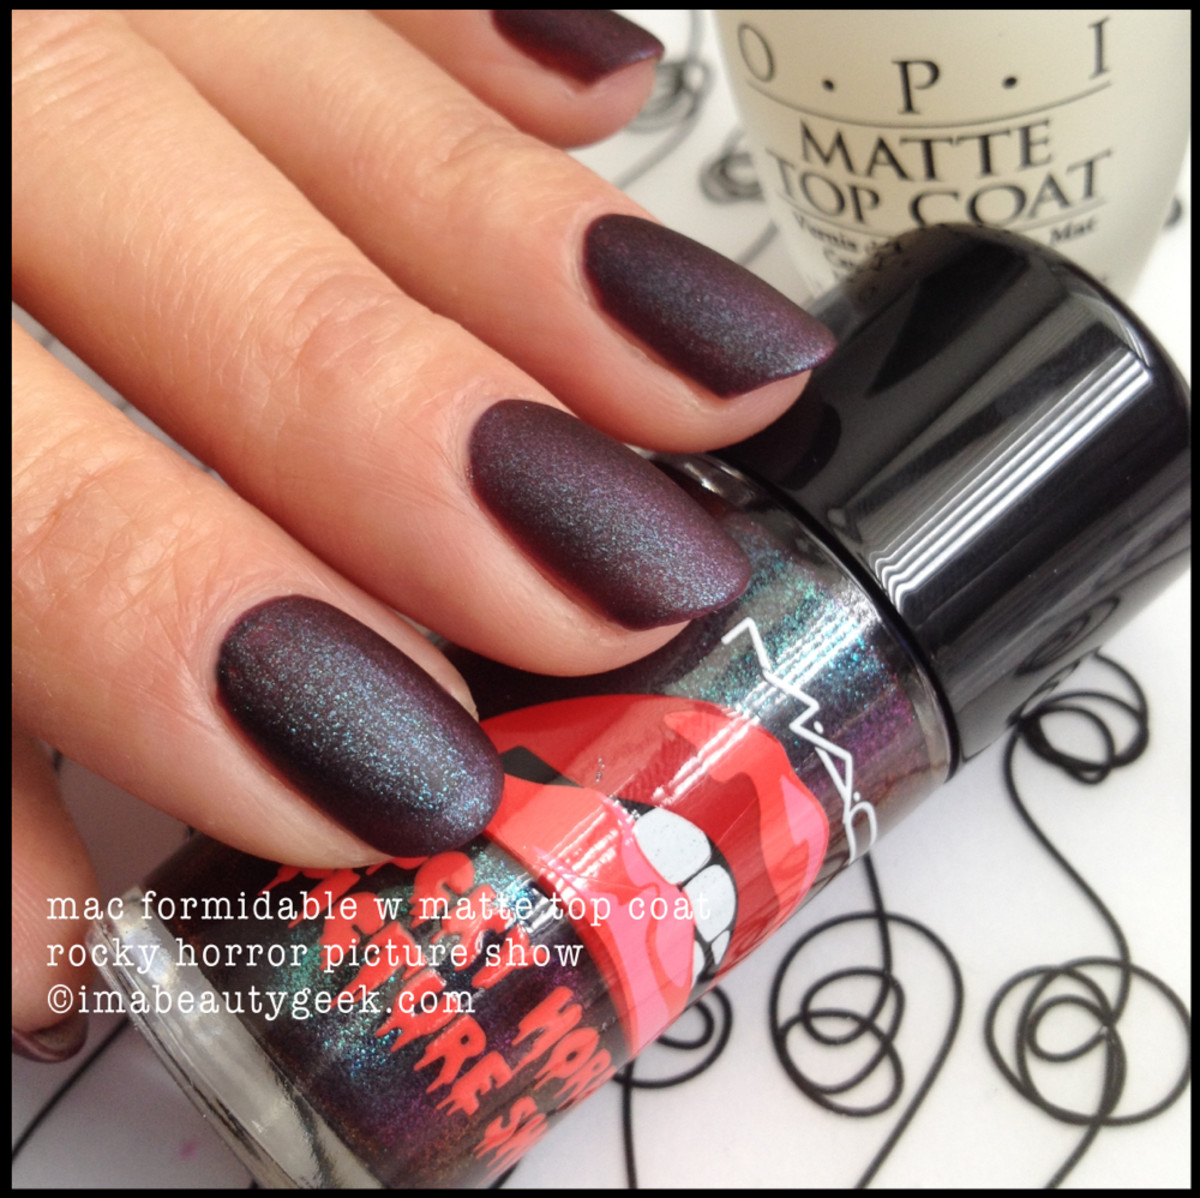 MAC Rocky Horror Picture Show Formidable w Matte Fall 2014